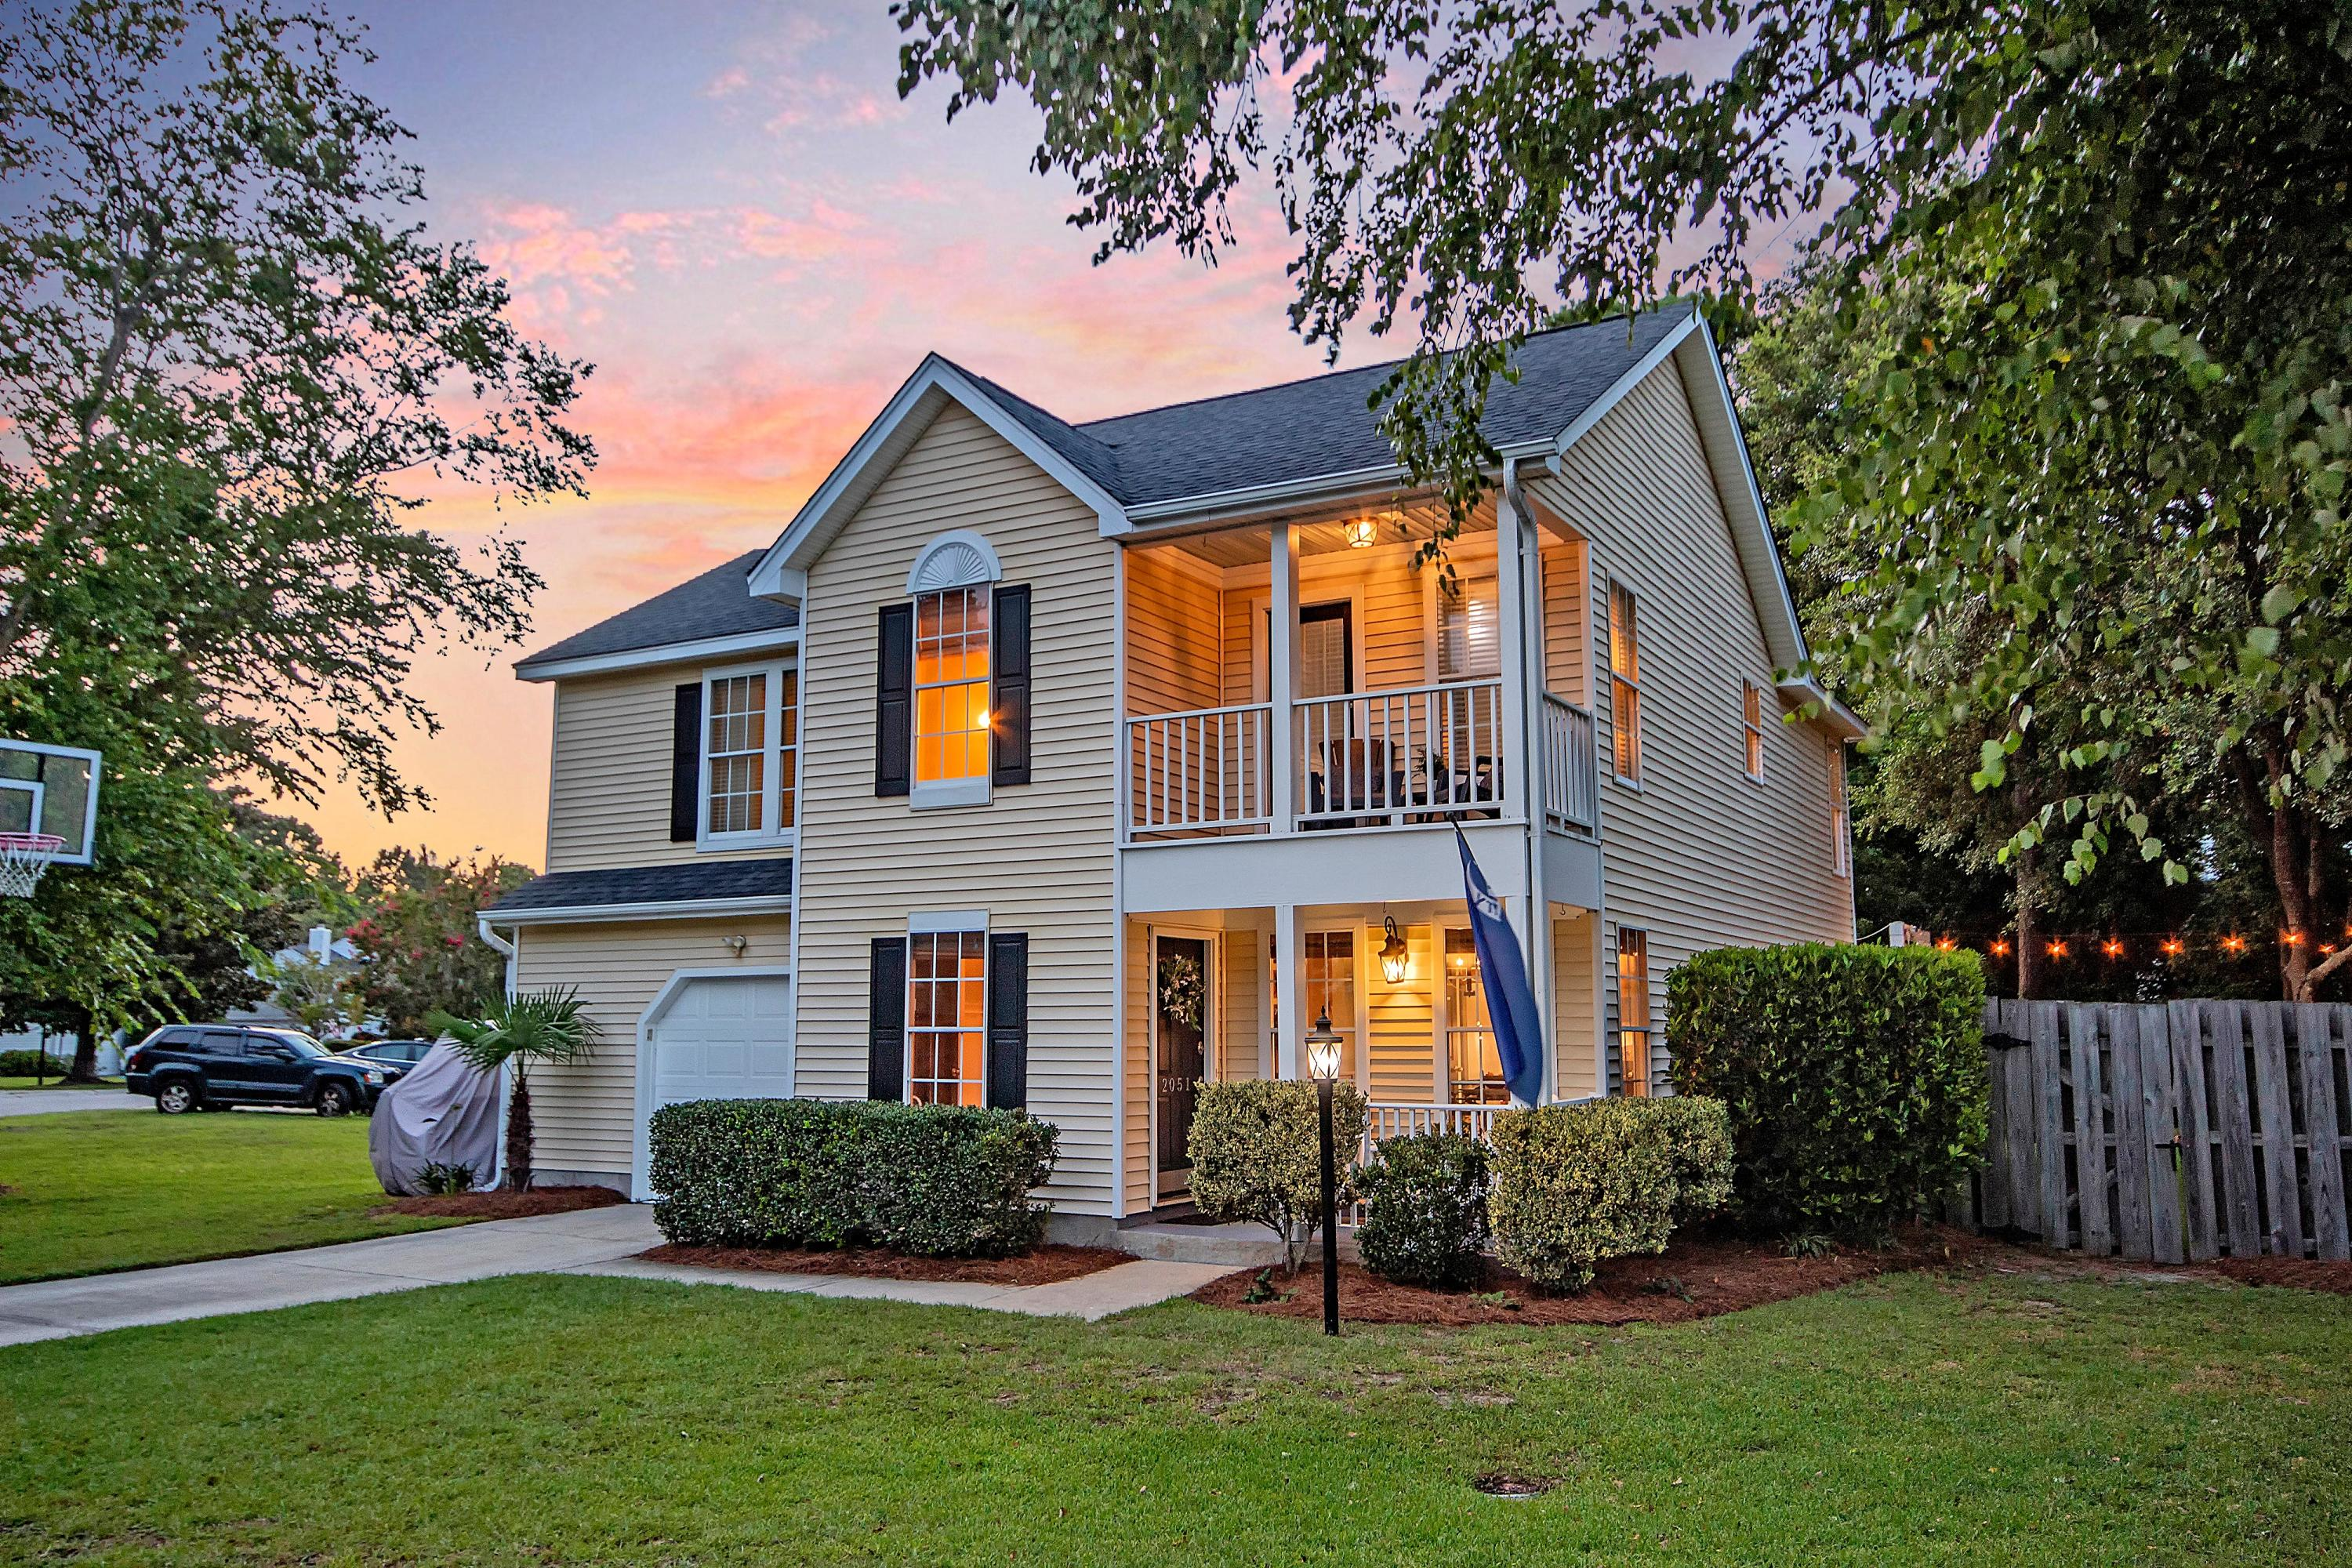 This beautifully updated Charleston style home is located only 4 miles from the beach and is within a short walk or bike ride to Town Center, Seaside Farms and Six Mile Shopping Centers, where you can enjoy fantastic restaurants, grocery stores, and shops.  The home is situated on a corner lot which boasts one of the largest properties in the neighborhood.  Relax on the front porch and watch native birds and the mature trees in the front yard.  Upon entering the home, you are greeted with a large, vaulted foyer with a powder room, which opens up to an updated kitchen and breakfast nook.  You will love cooking for friends and family in the kitchen which has ample lighting, cherry wood cabinets, stainless steel appliances, granite countertops and white backsplash. The separate dining room is perfect for entertaining and is open to the grand living room which features 18 ft ceilings, a wood burning fireplace, and plenty of room for a comfortable couch where you can relax after a long day.  Upstairs the large master bedroom feels like a sanctuary with the updated master bathroom and custom storage walk in closet.  The master bathroom features double sinks, a large shower with two shower heads, and plenty of storage space.  Two additional bedrooms share the second full bathroom, and guests can enjoy spending time outside on the second-floor front porch.  Outside in the backyard you will find beautiful oak trees, a back patio with a custom-made pergola, a nearly new playset, and a large shed, both of which convey with the property.  The home also includes many small fruit trees including two orange trees (one left of the driveway and one in the backyard), avocado, lemon, and lime trees in the backyard, and mulberry and peach trees on the side yard near the shed.  A golf cart parking area is located on the left side of the house adjacent to the rose bushes (please note the golf cart and the basketball hoop do not convey).